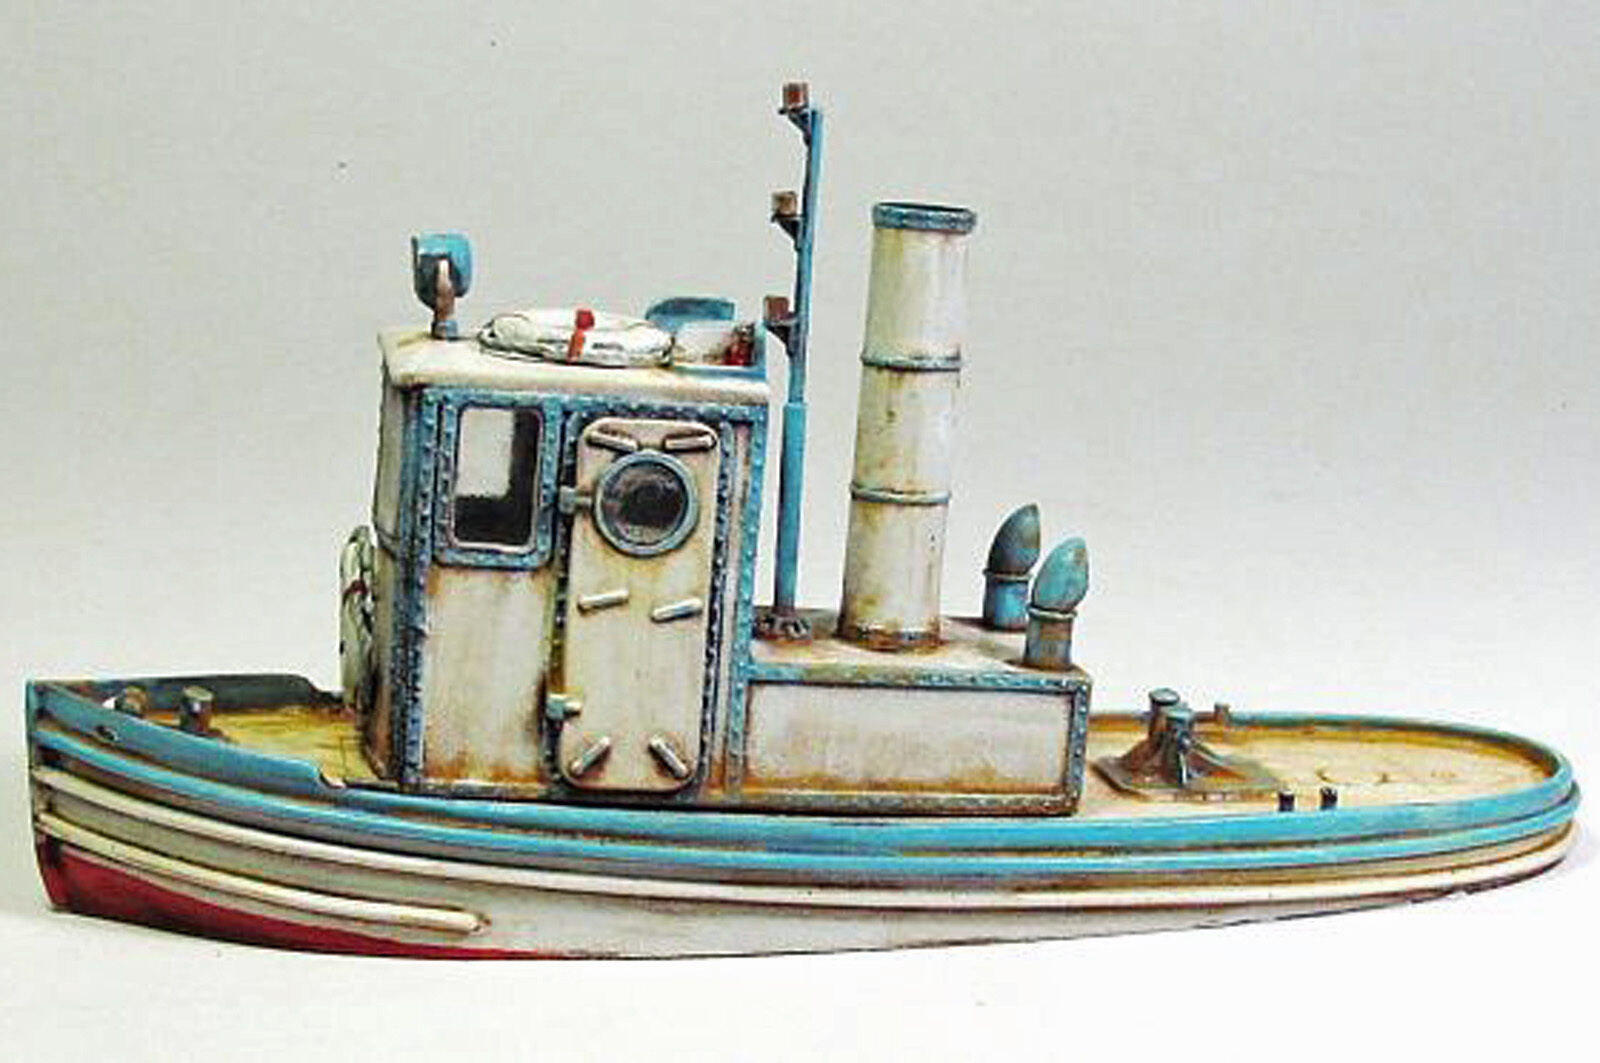 24' TUGBOAT O On30 Waterline Hull Model Railroad Ship Boat Uptd Resin Kit FR175